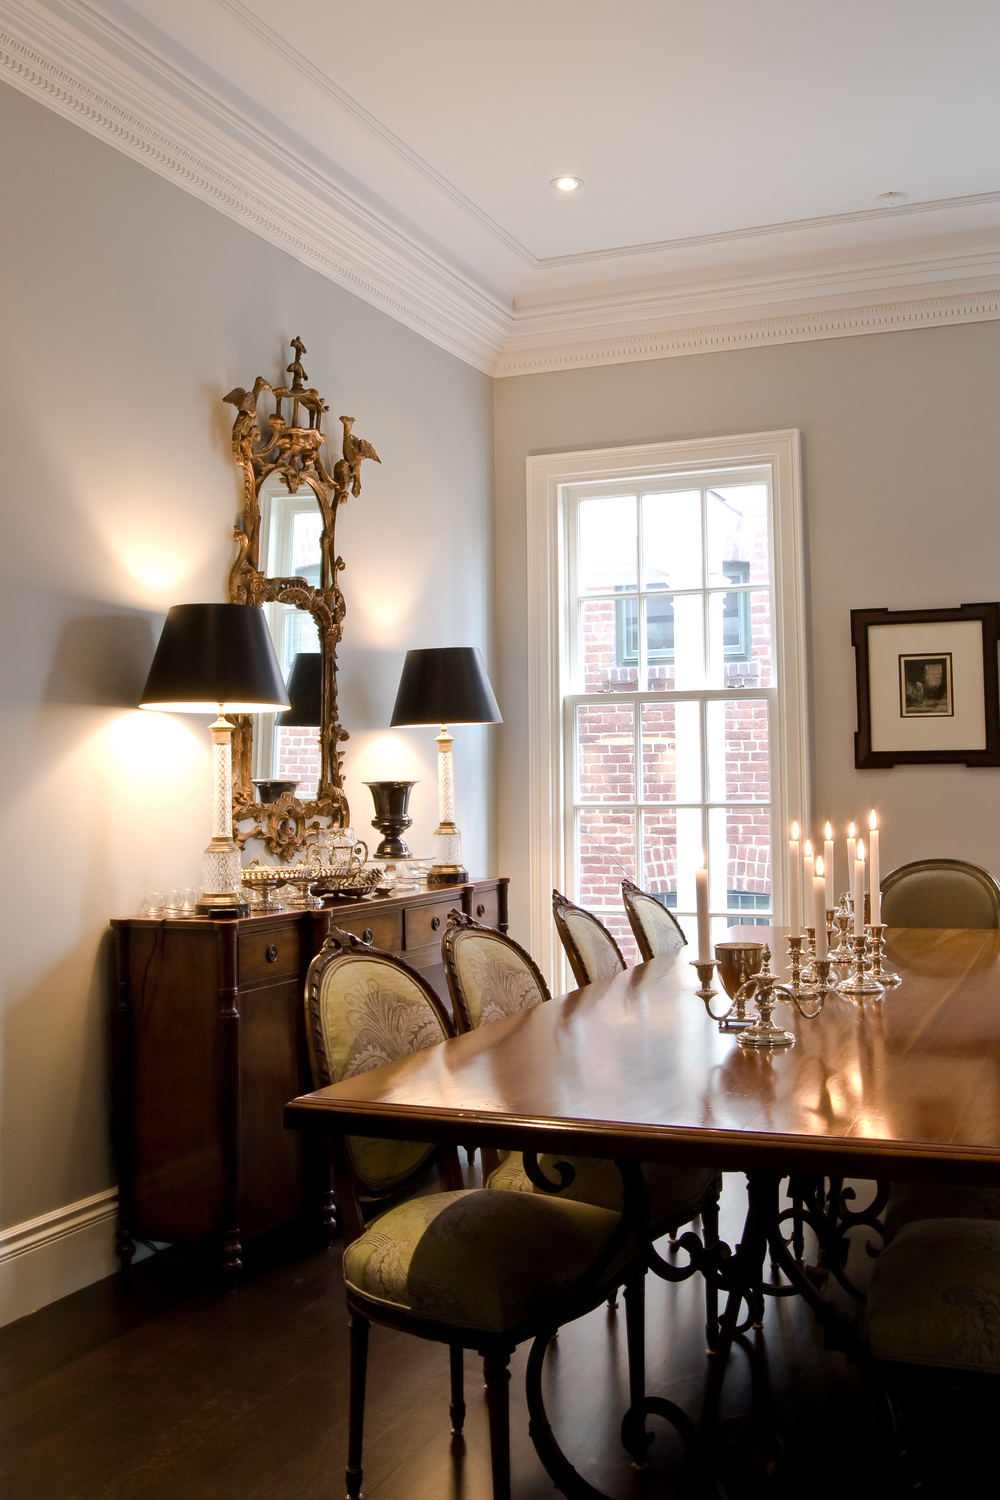 20100128-Interior dinning room side shot.jpg